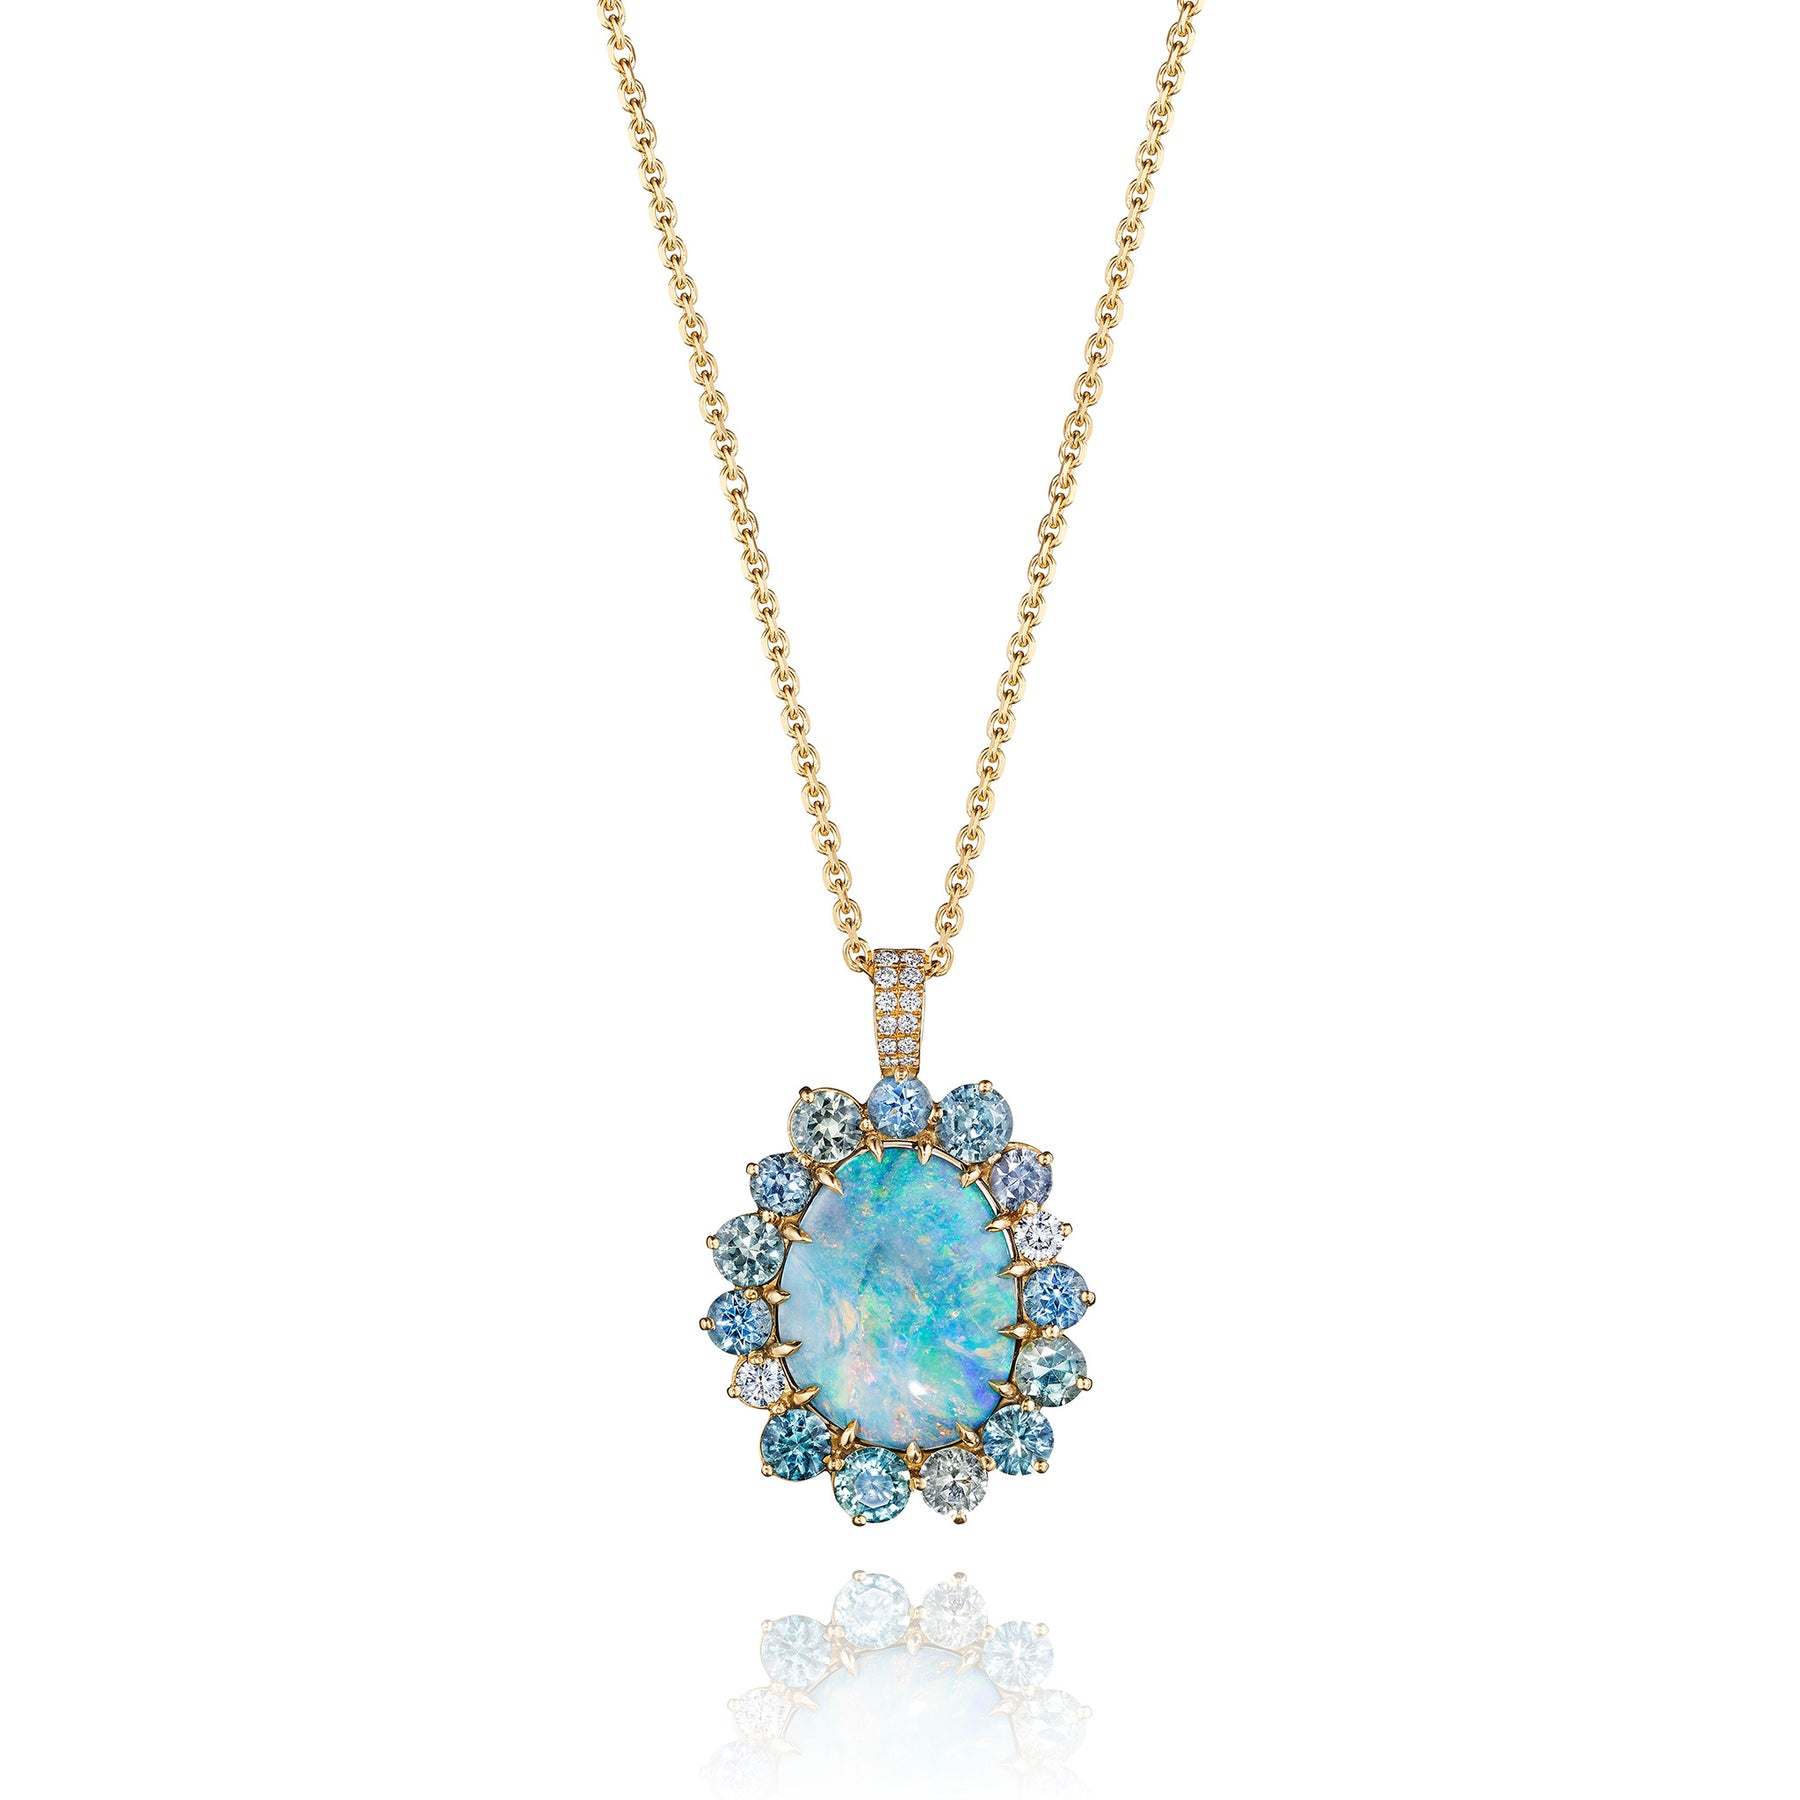 ZoZo Multi-Gemstone Opal Pendant Necklace_18k Yellow Gold